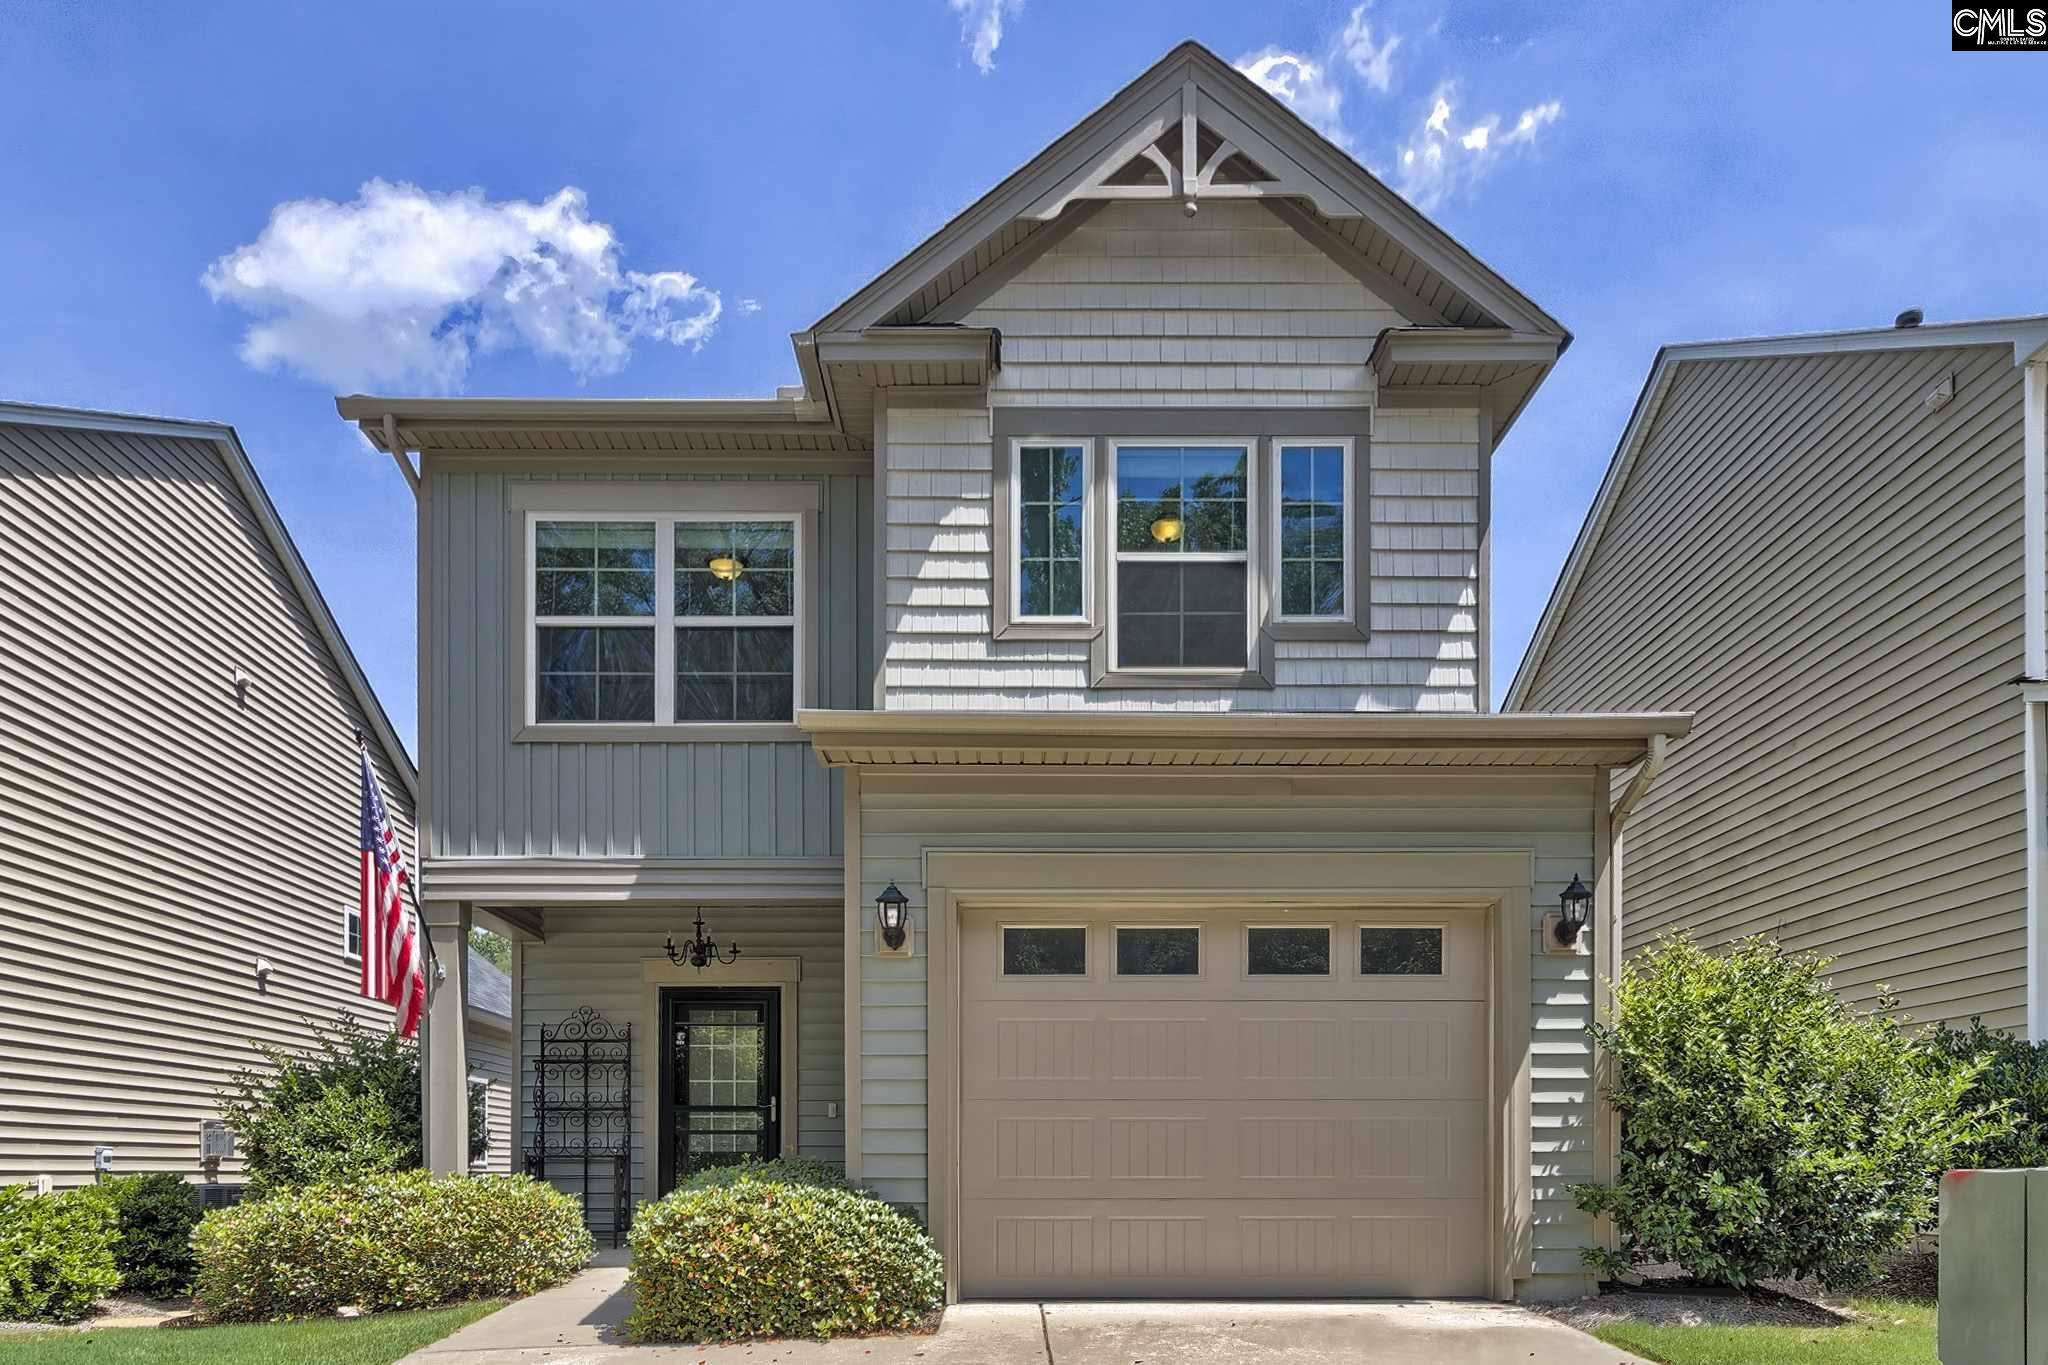 421 Brownell Blythewood, SC 29016-7255